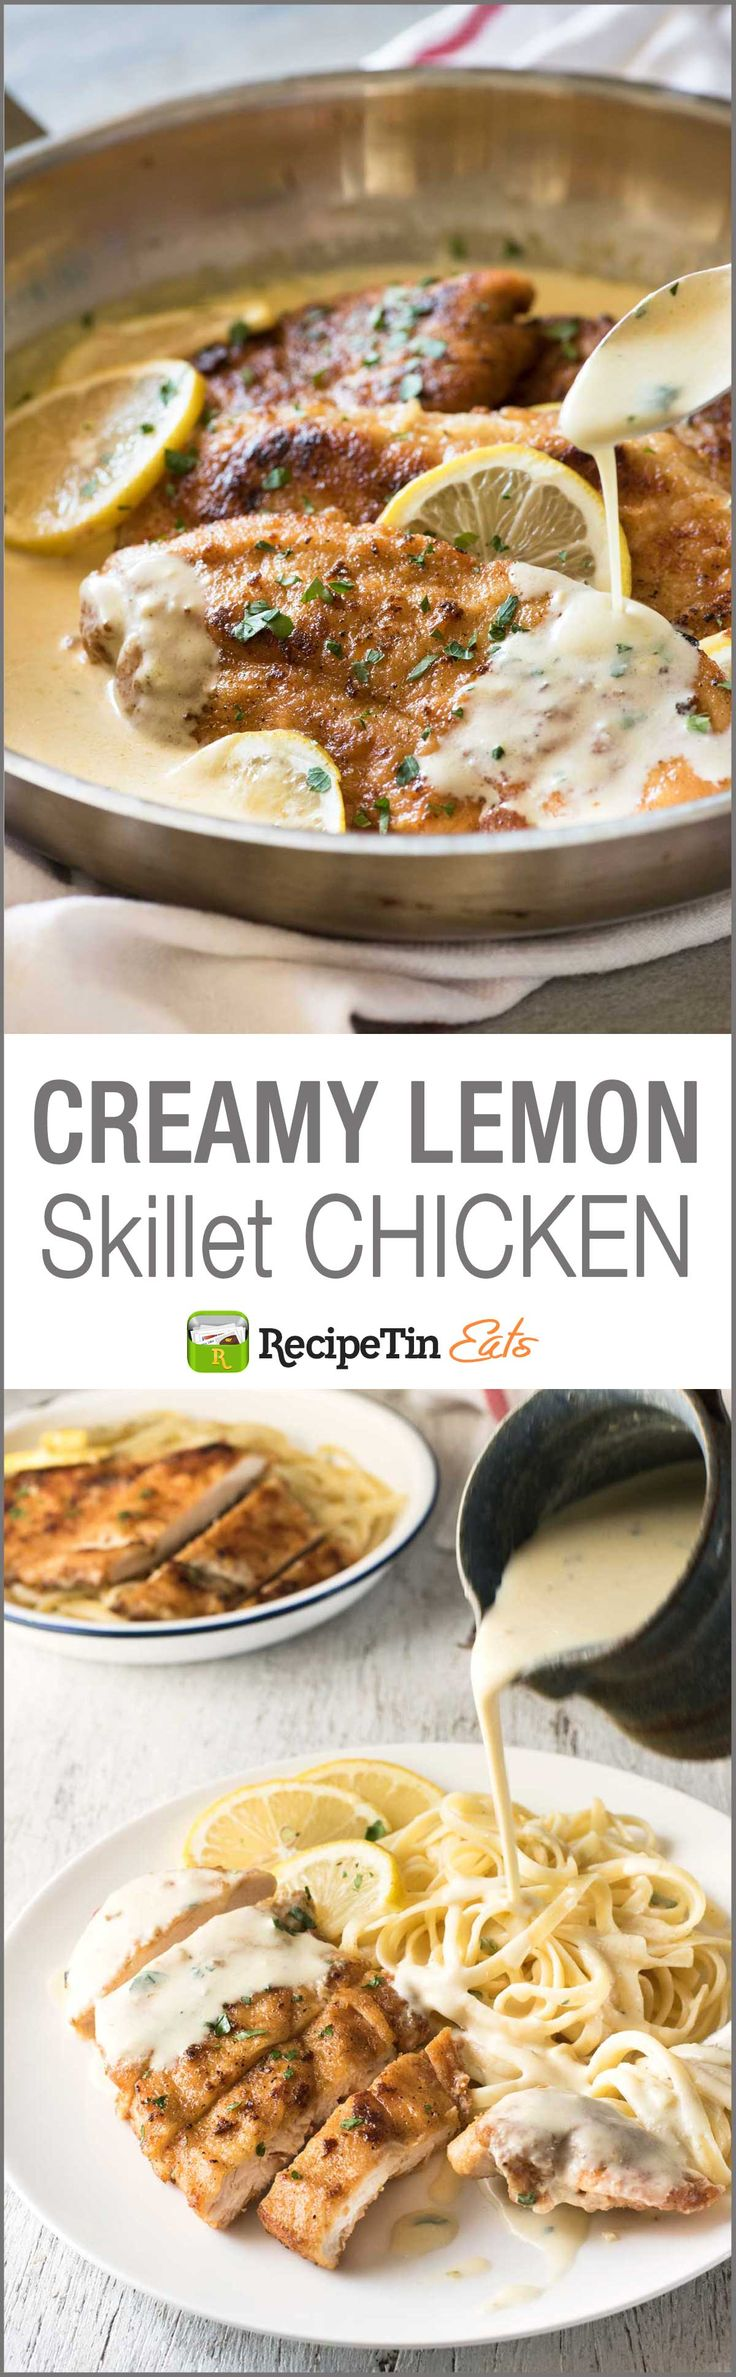 Creamy Lemon Chicken - All made in one skillet, and on the table in about 15 minutes!